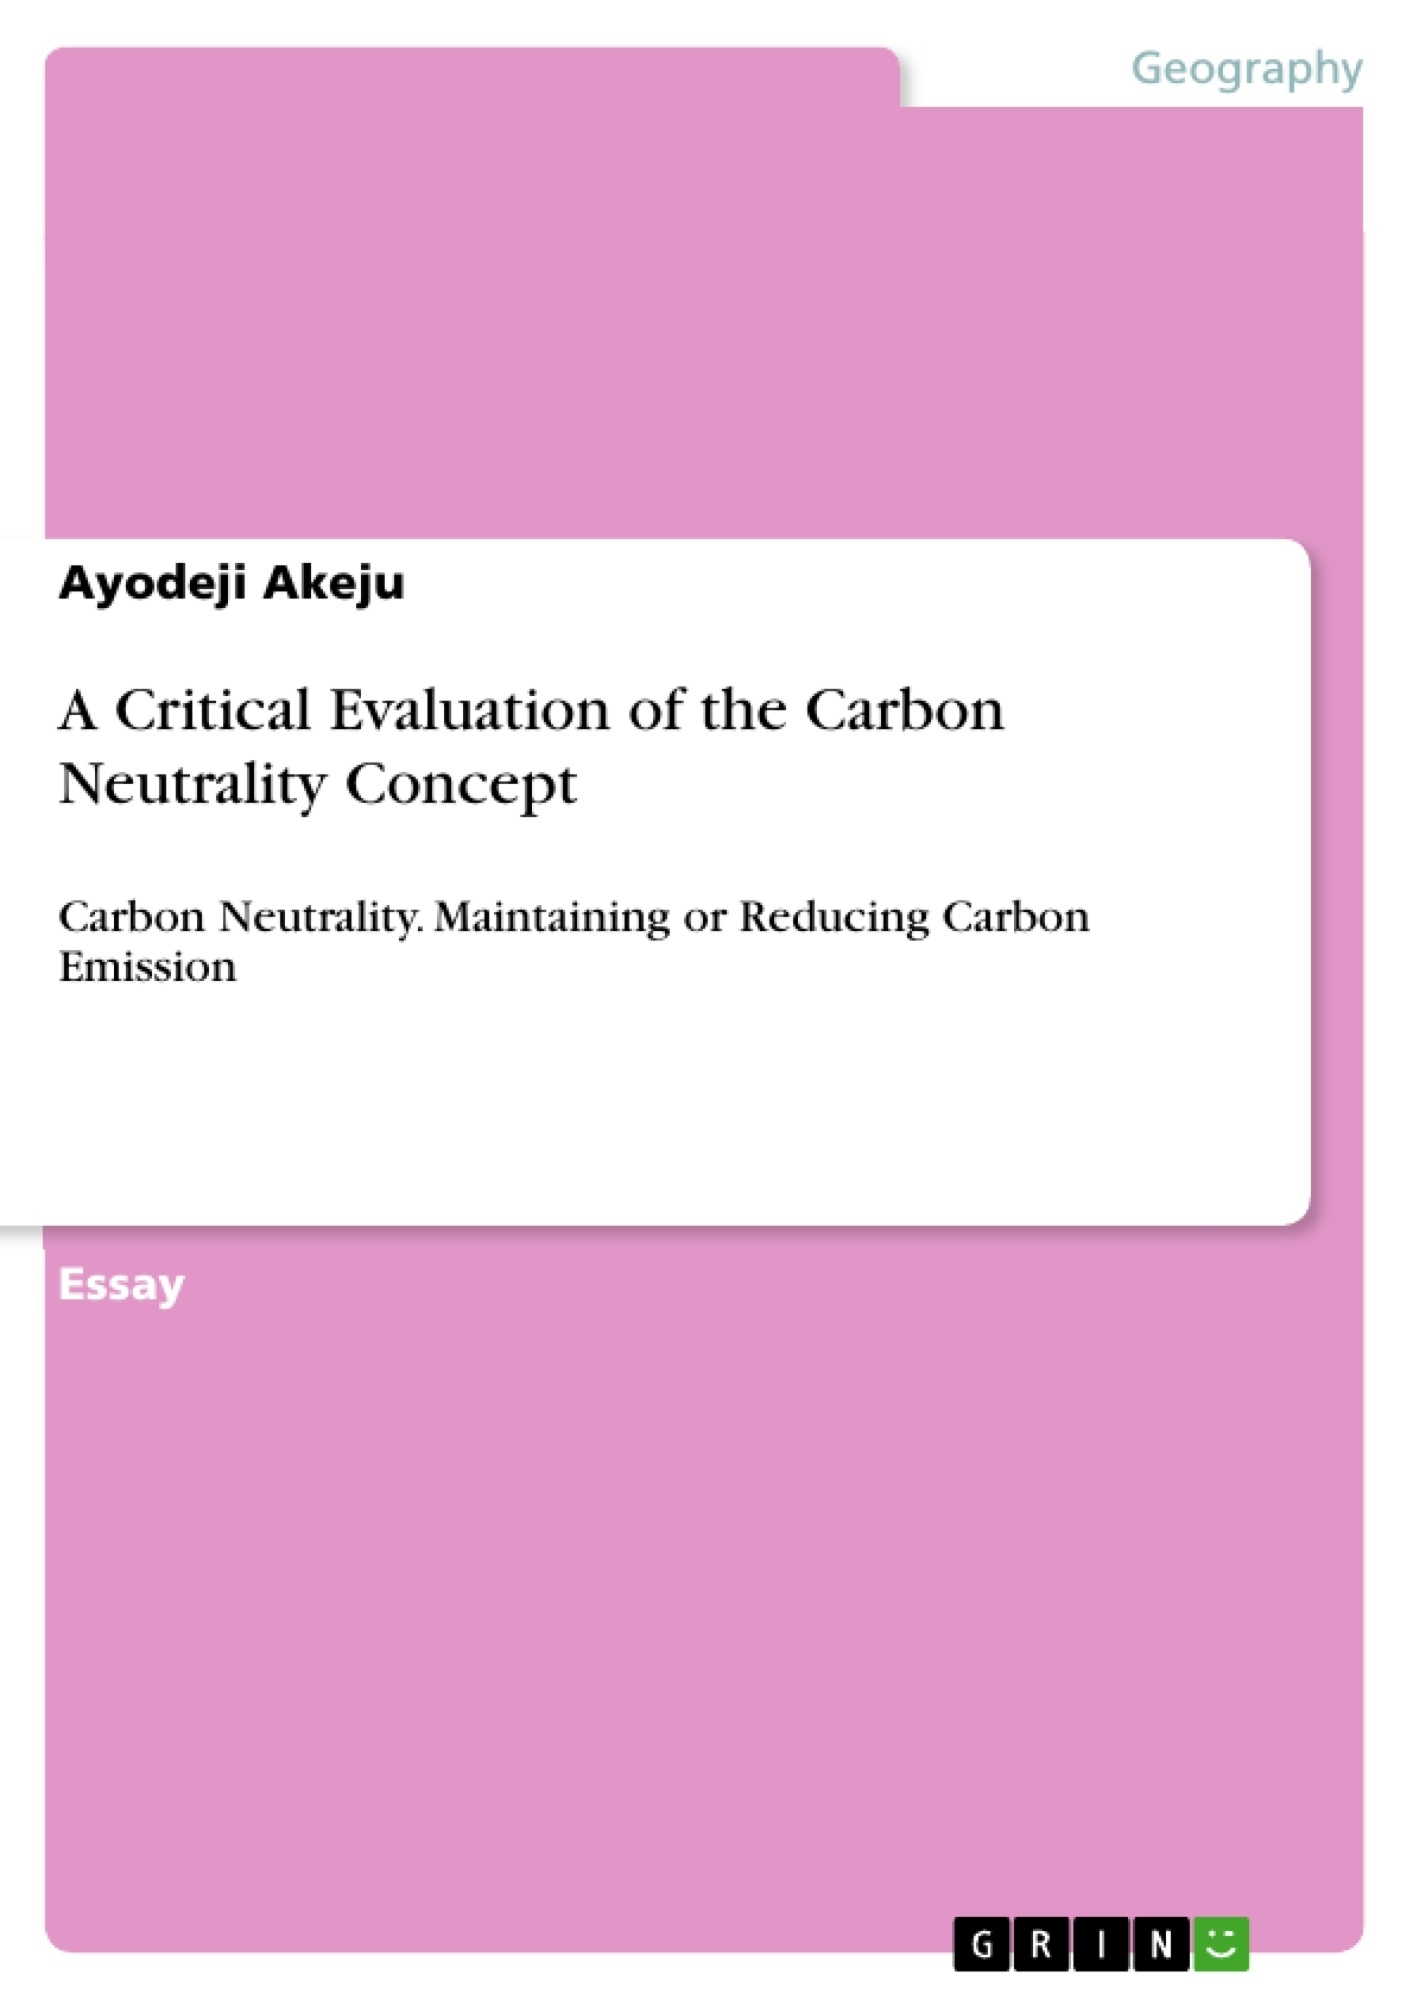 Title: A Critical Evaluation of the Carbon Neutrality Concept